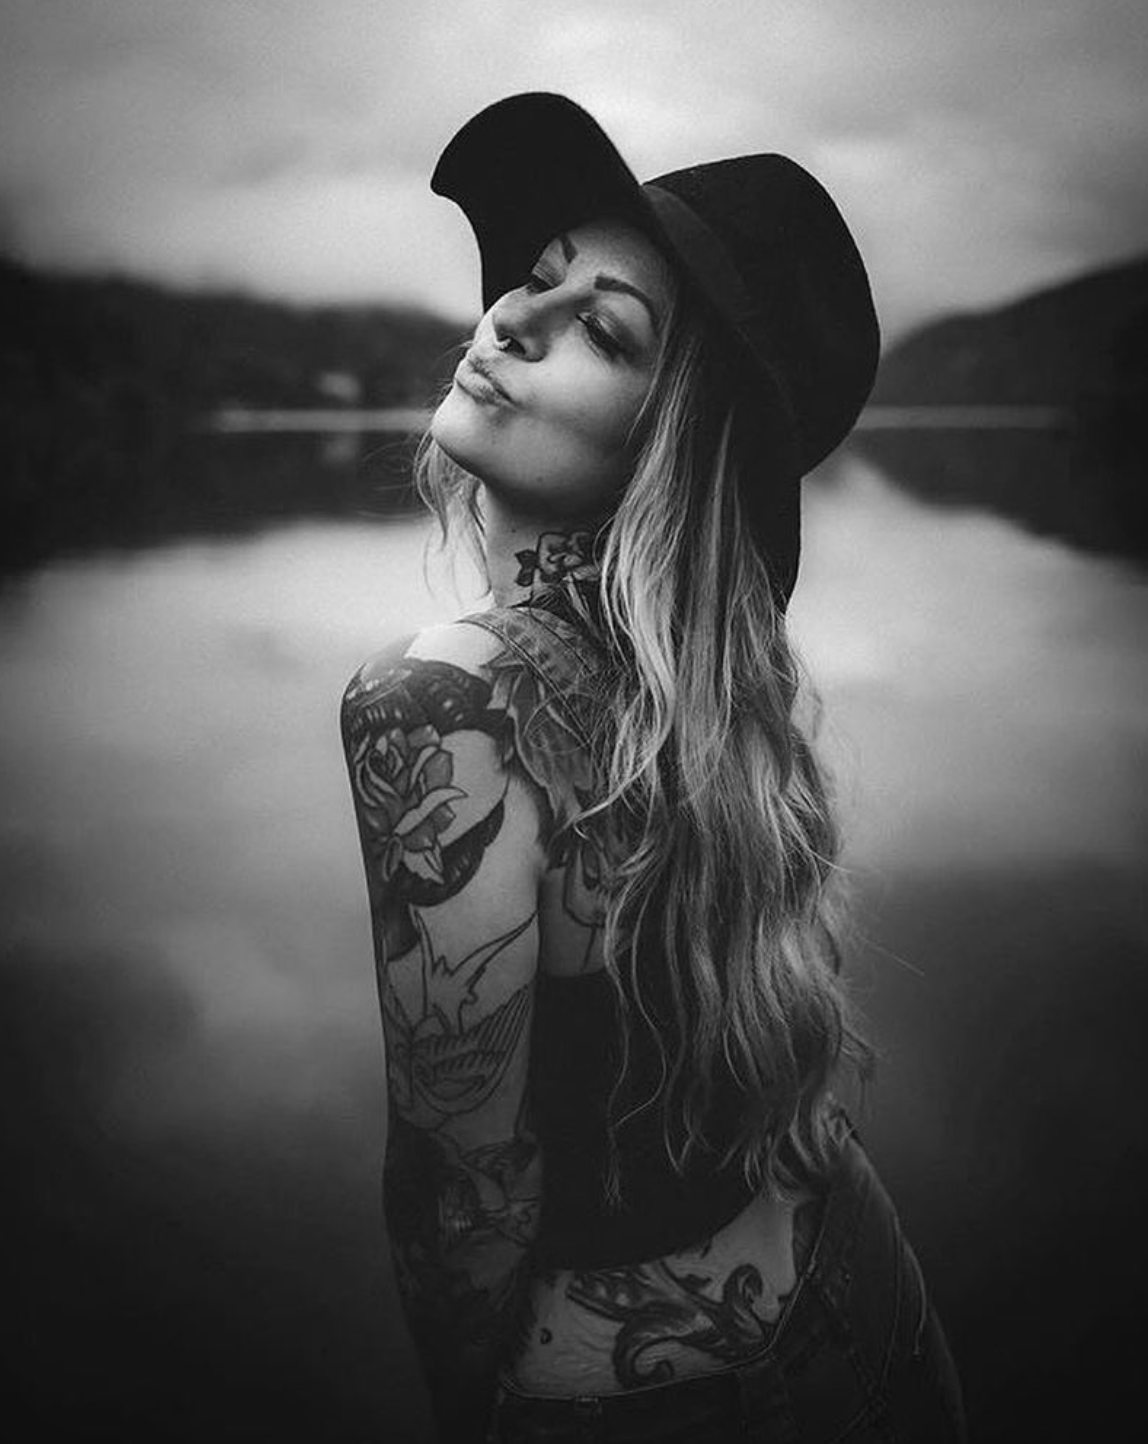 Girl With Tattoos Photography